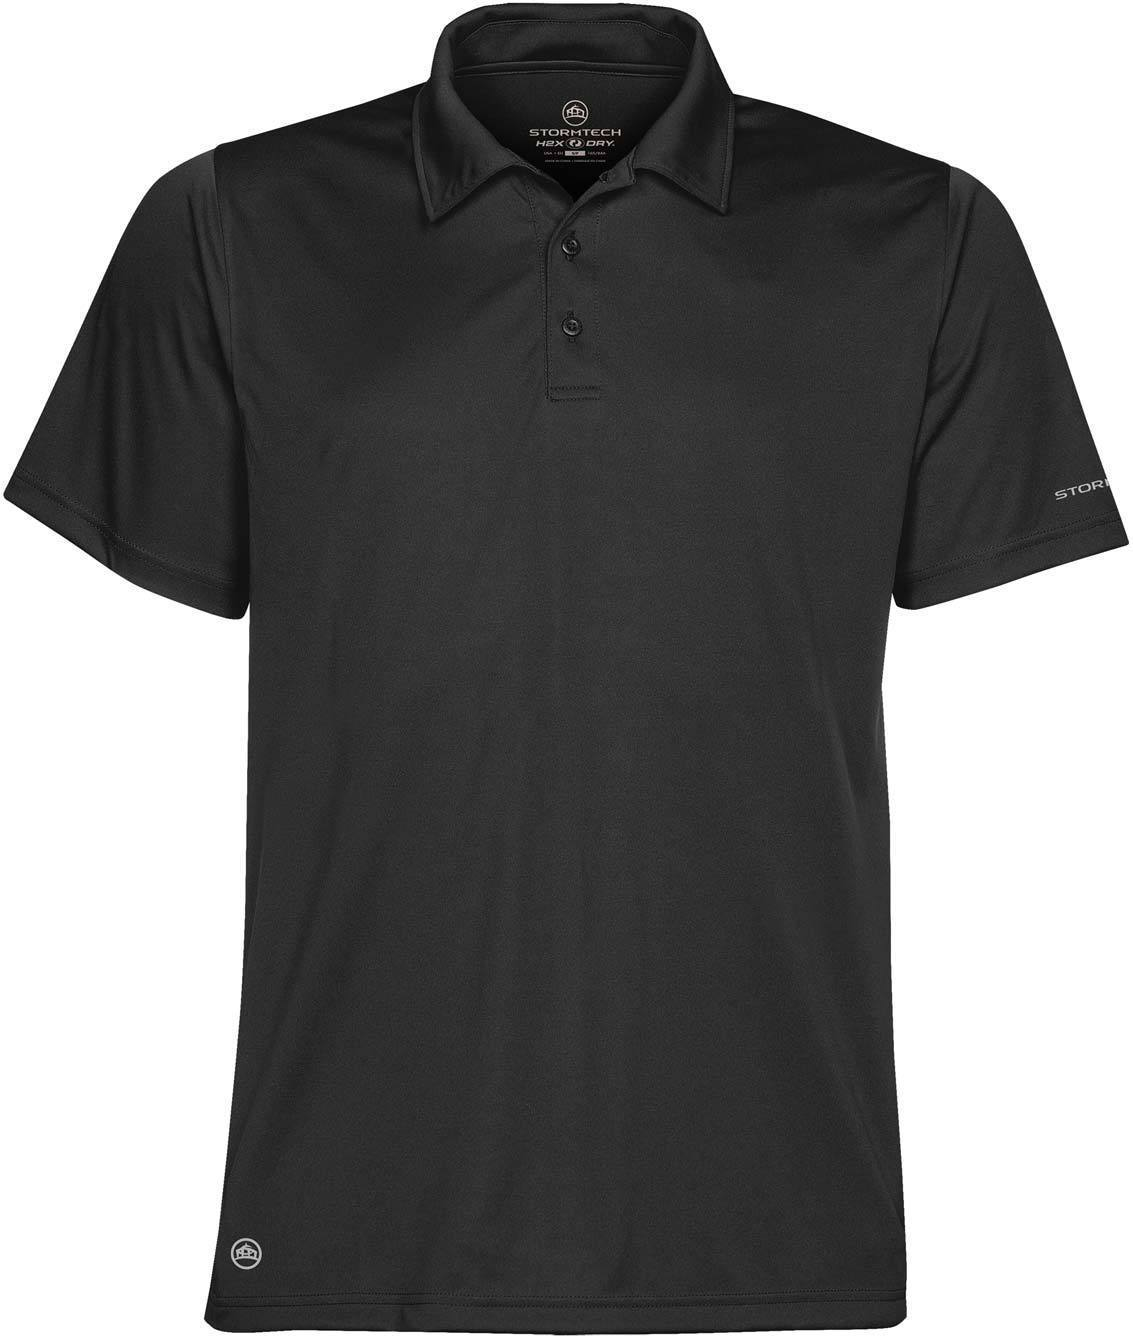 Mens Apollo Polo